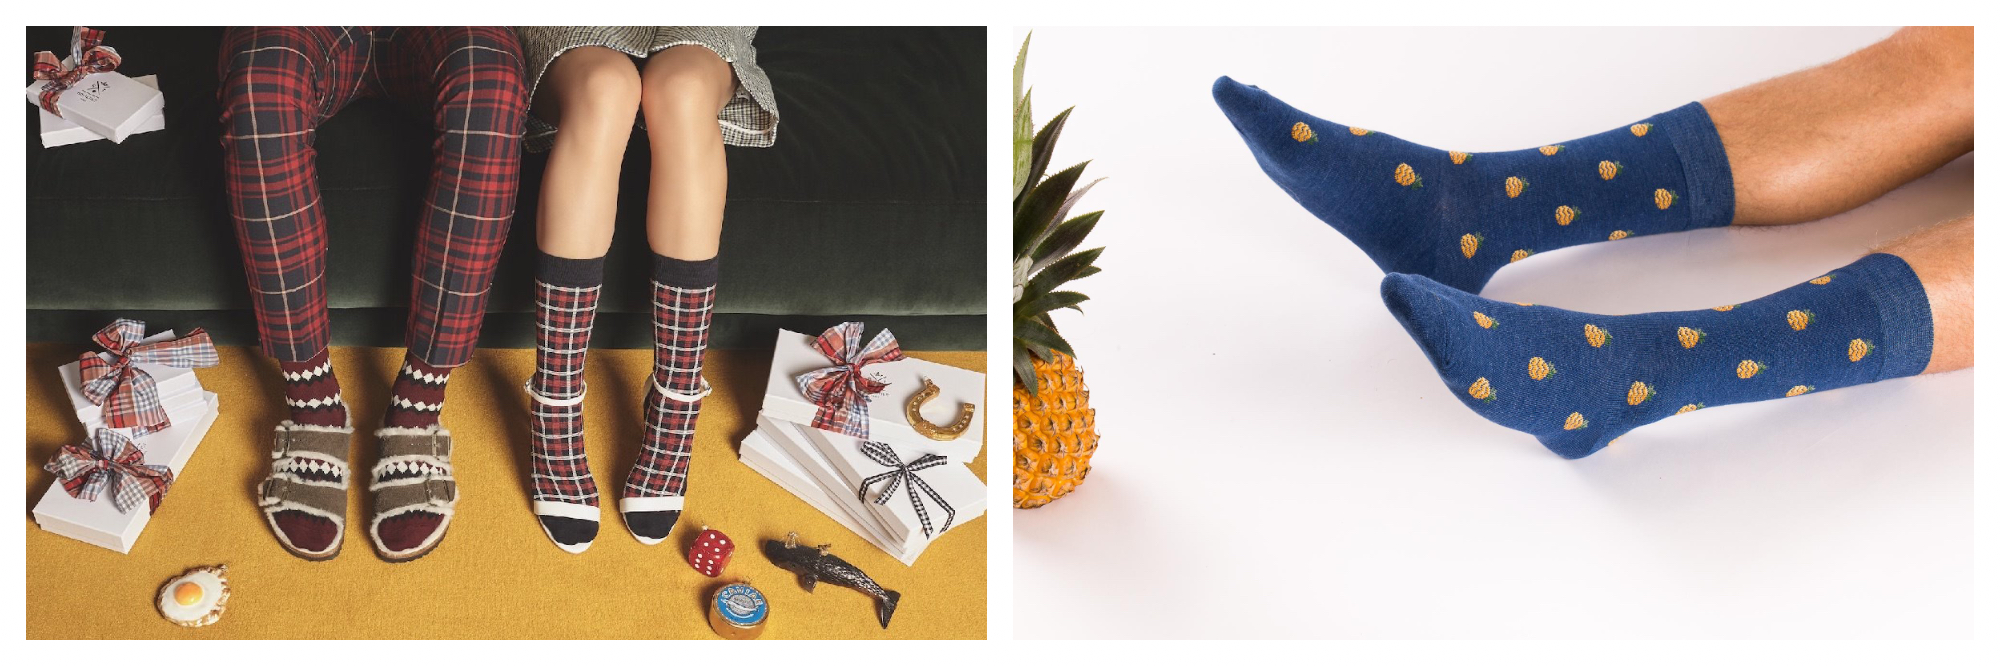 On the left there are two sets of legs depicting two people sitting down, wearing Christmas socks - one dressed in plaid trousers and one in a short skirt, both surrounded by Christmas presents and various items. On the right is a set of bare male legs from the knee down, reclining on the floor with blue socks decorated with little pineapples on them. There is a pineapple just next to the person's feet.